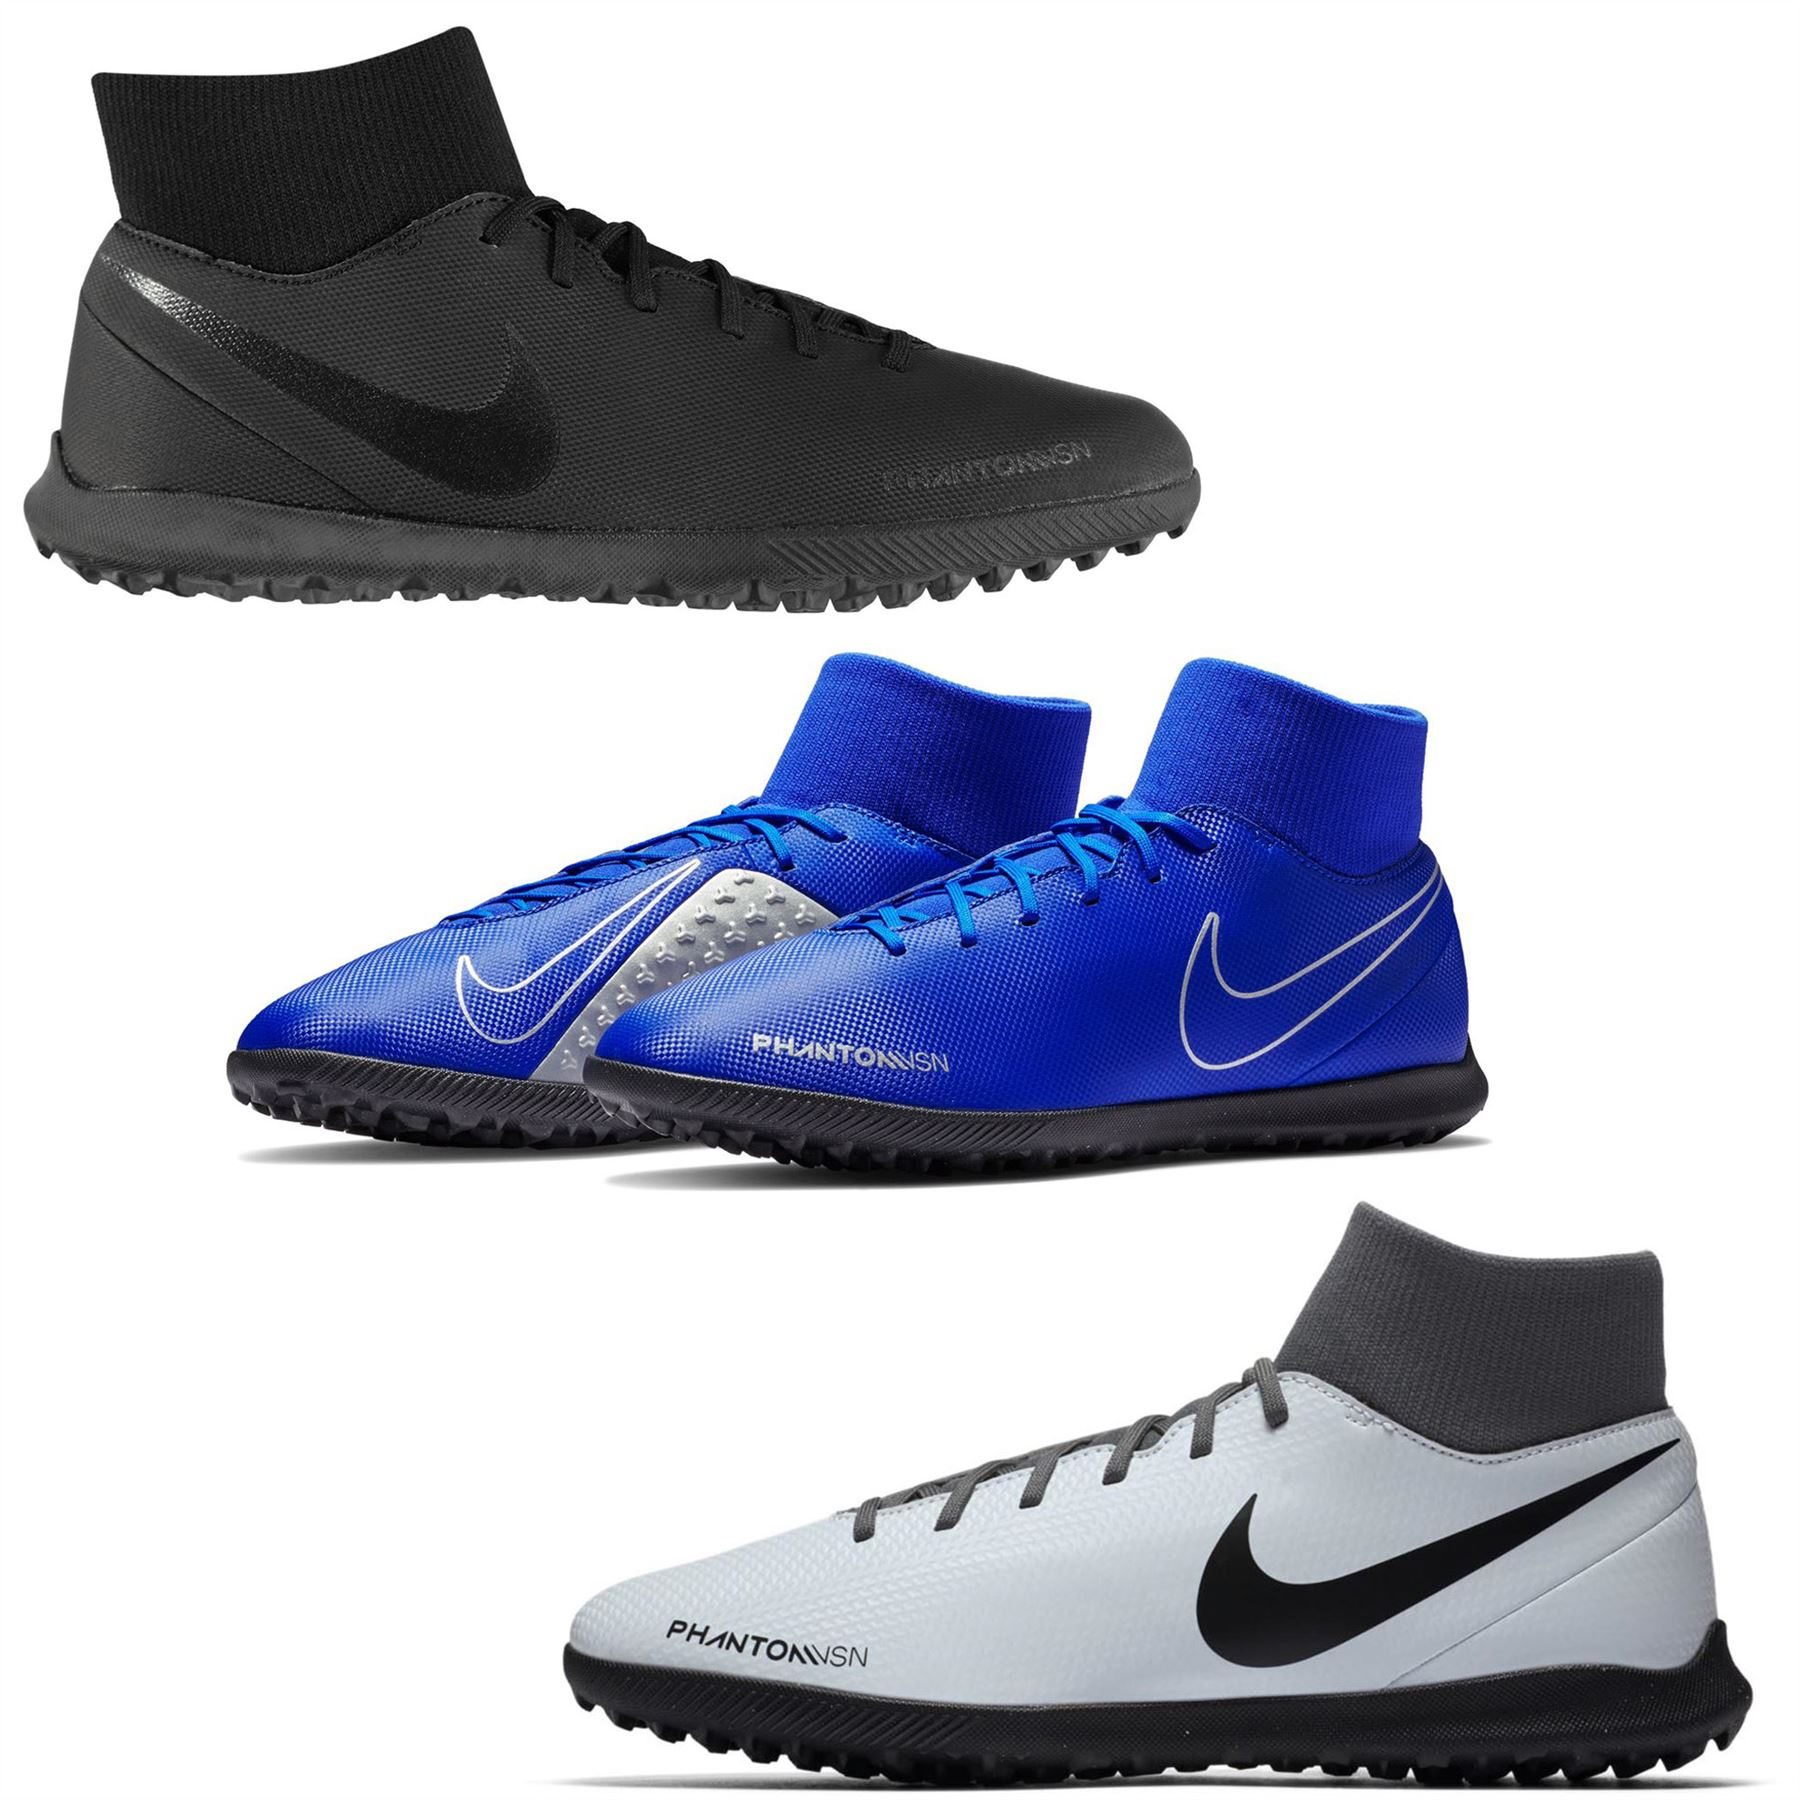 Details about Nike Phantom Vision Club DF Astro Turf Football Trainers Mens Soccer Shoes